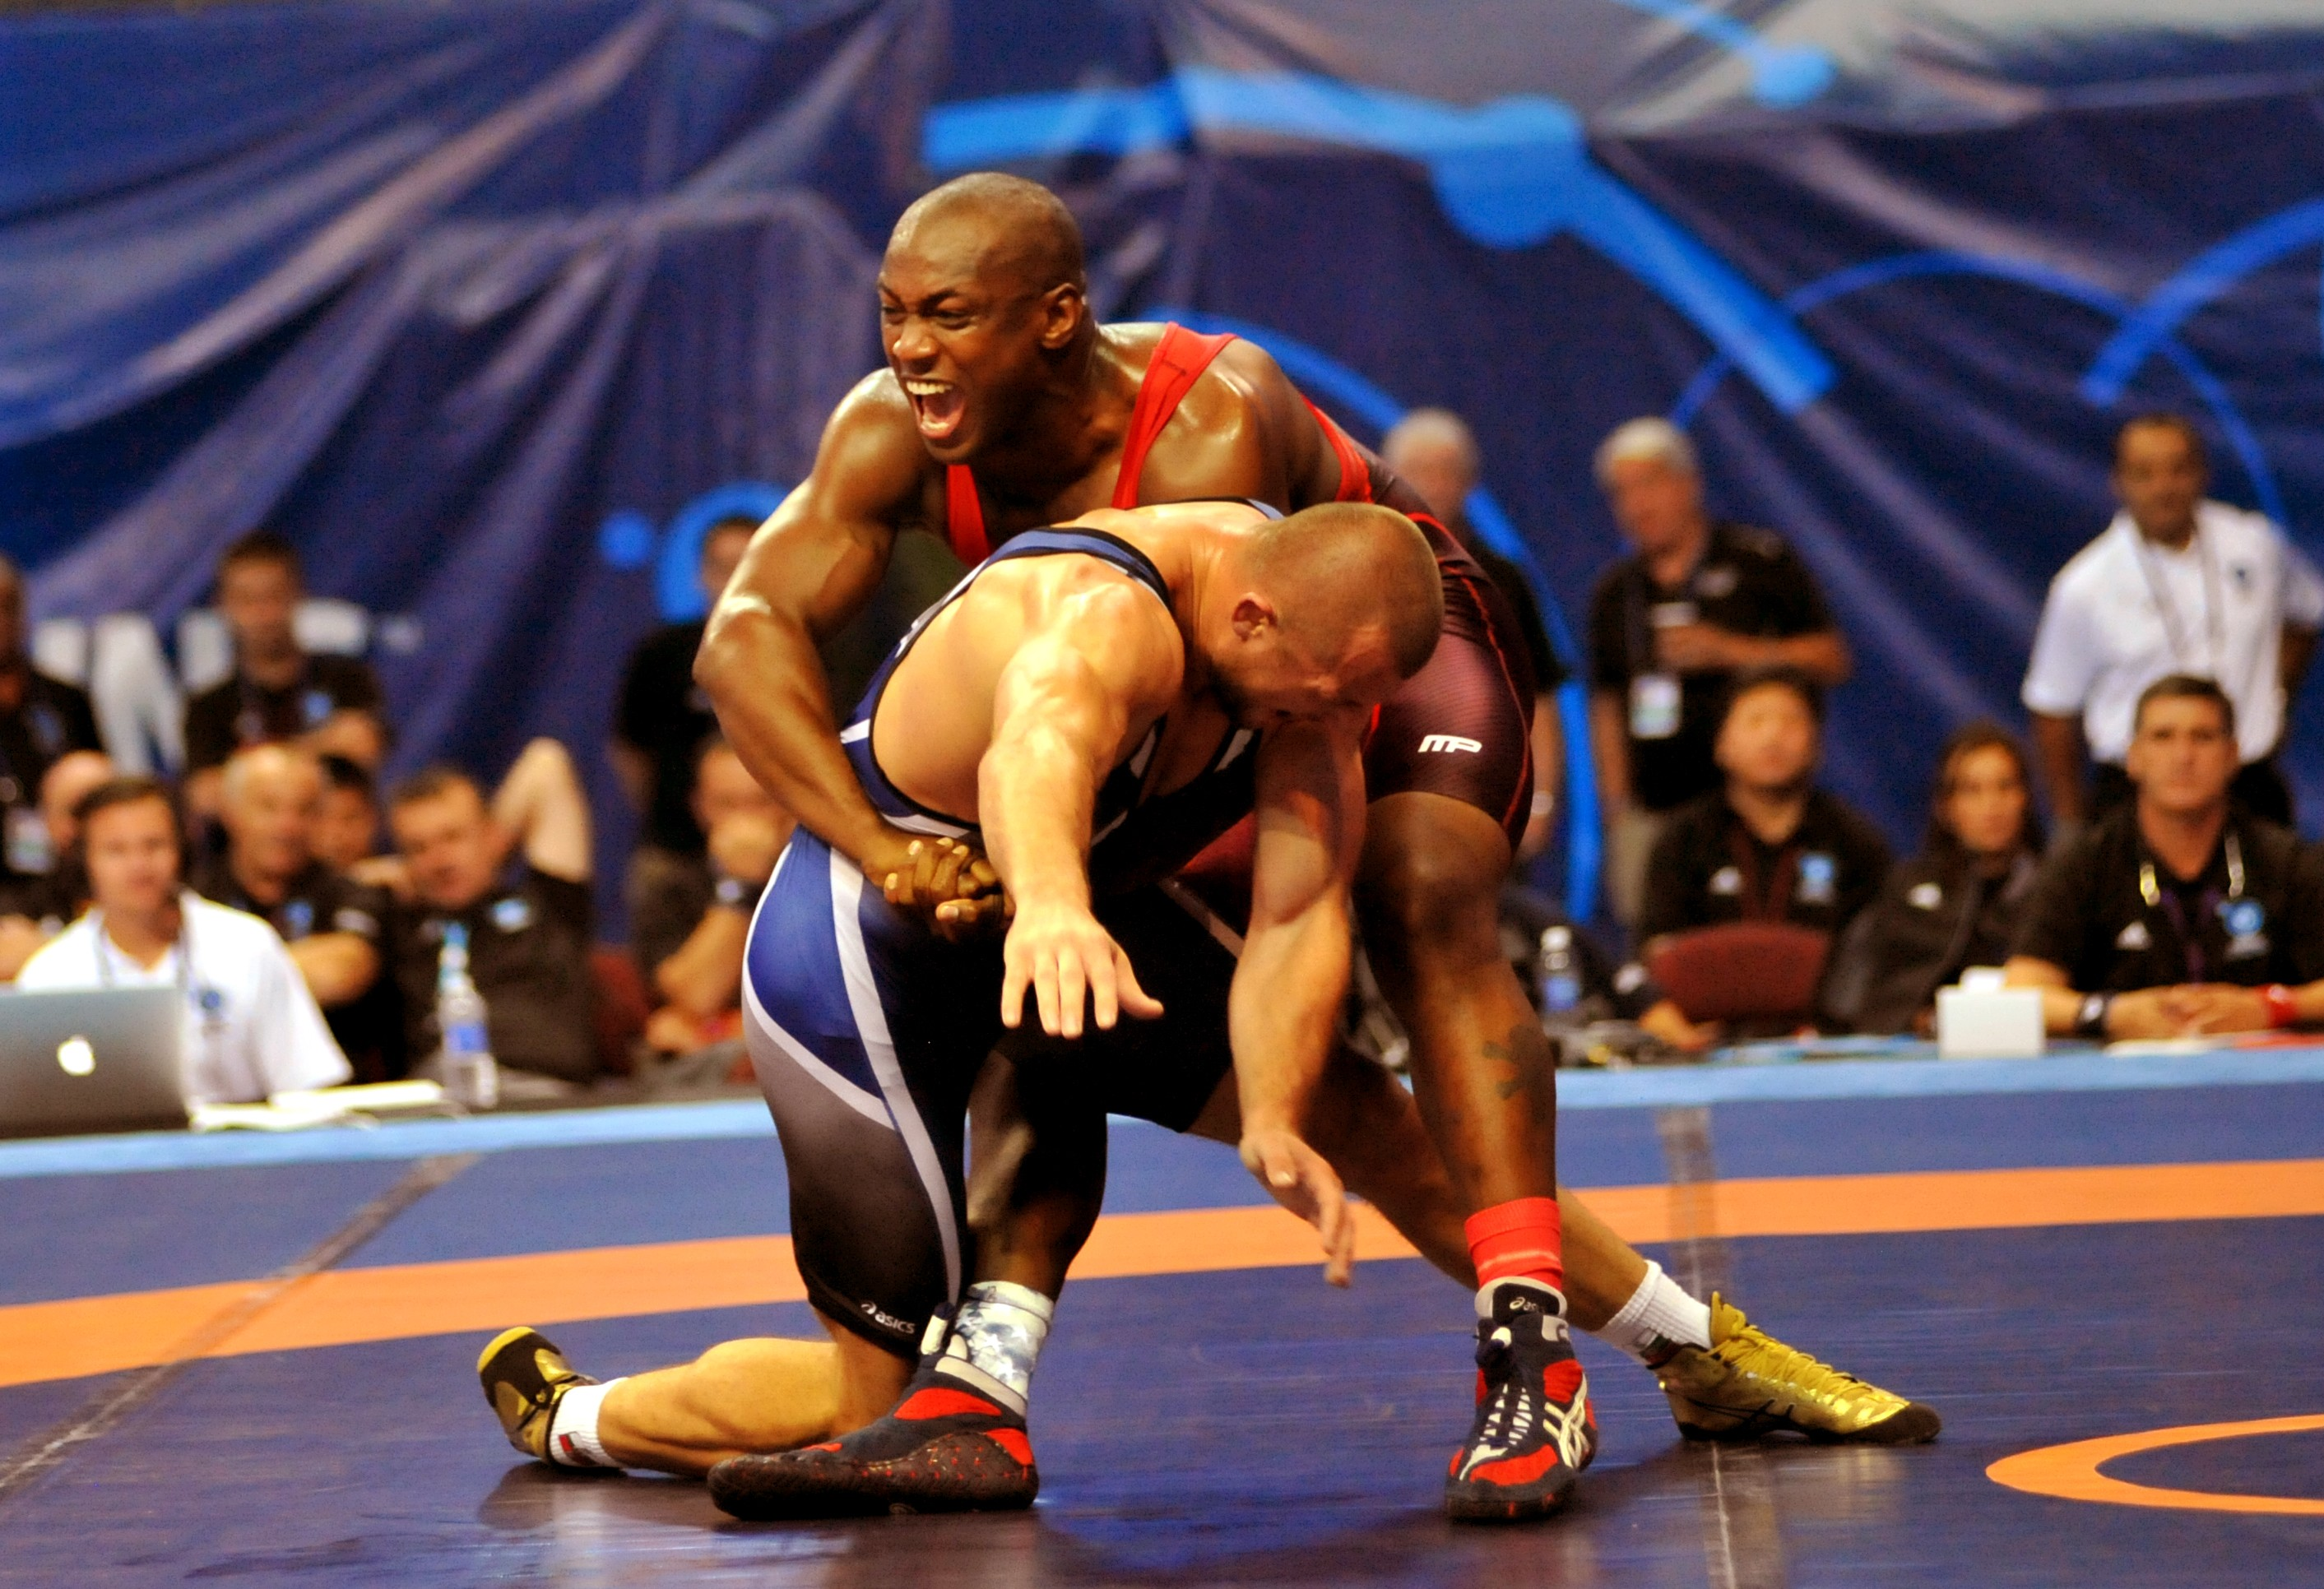 Youth wrestler inspires Soldier at World Championships | Article ...